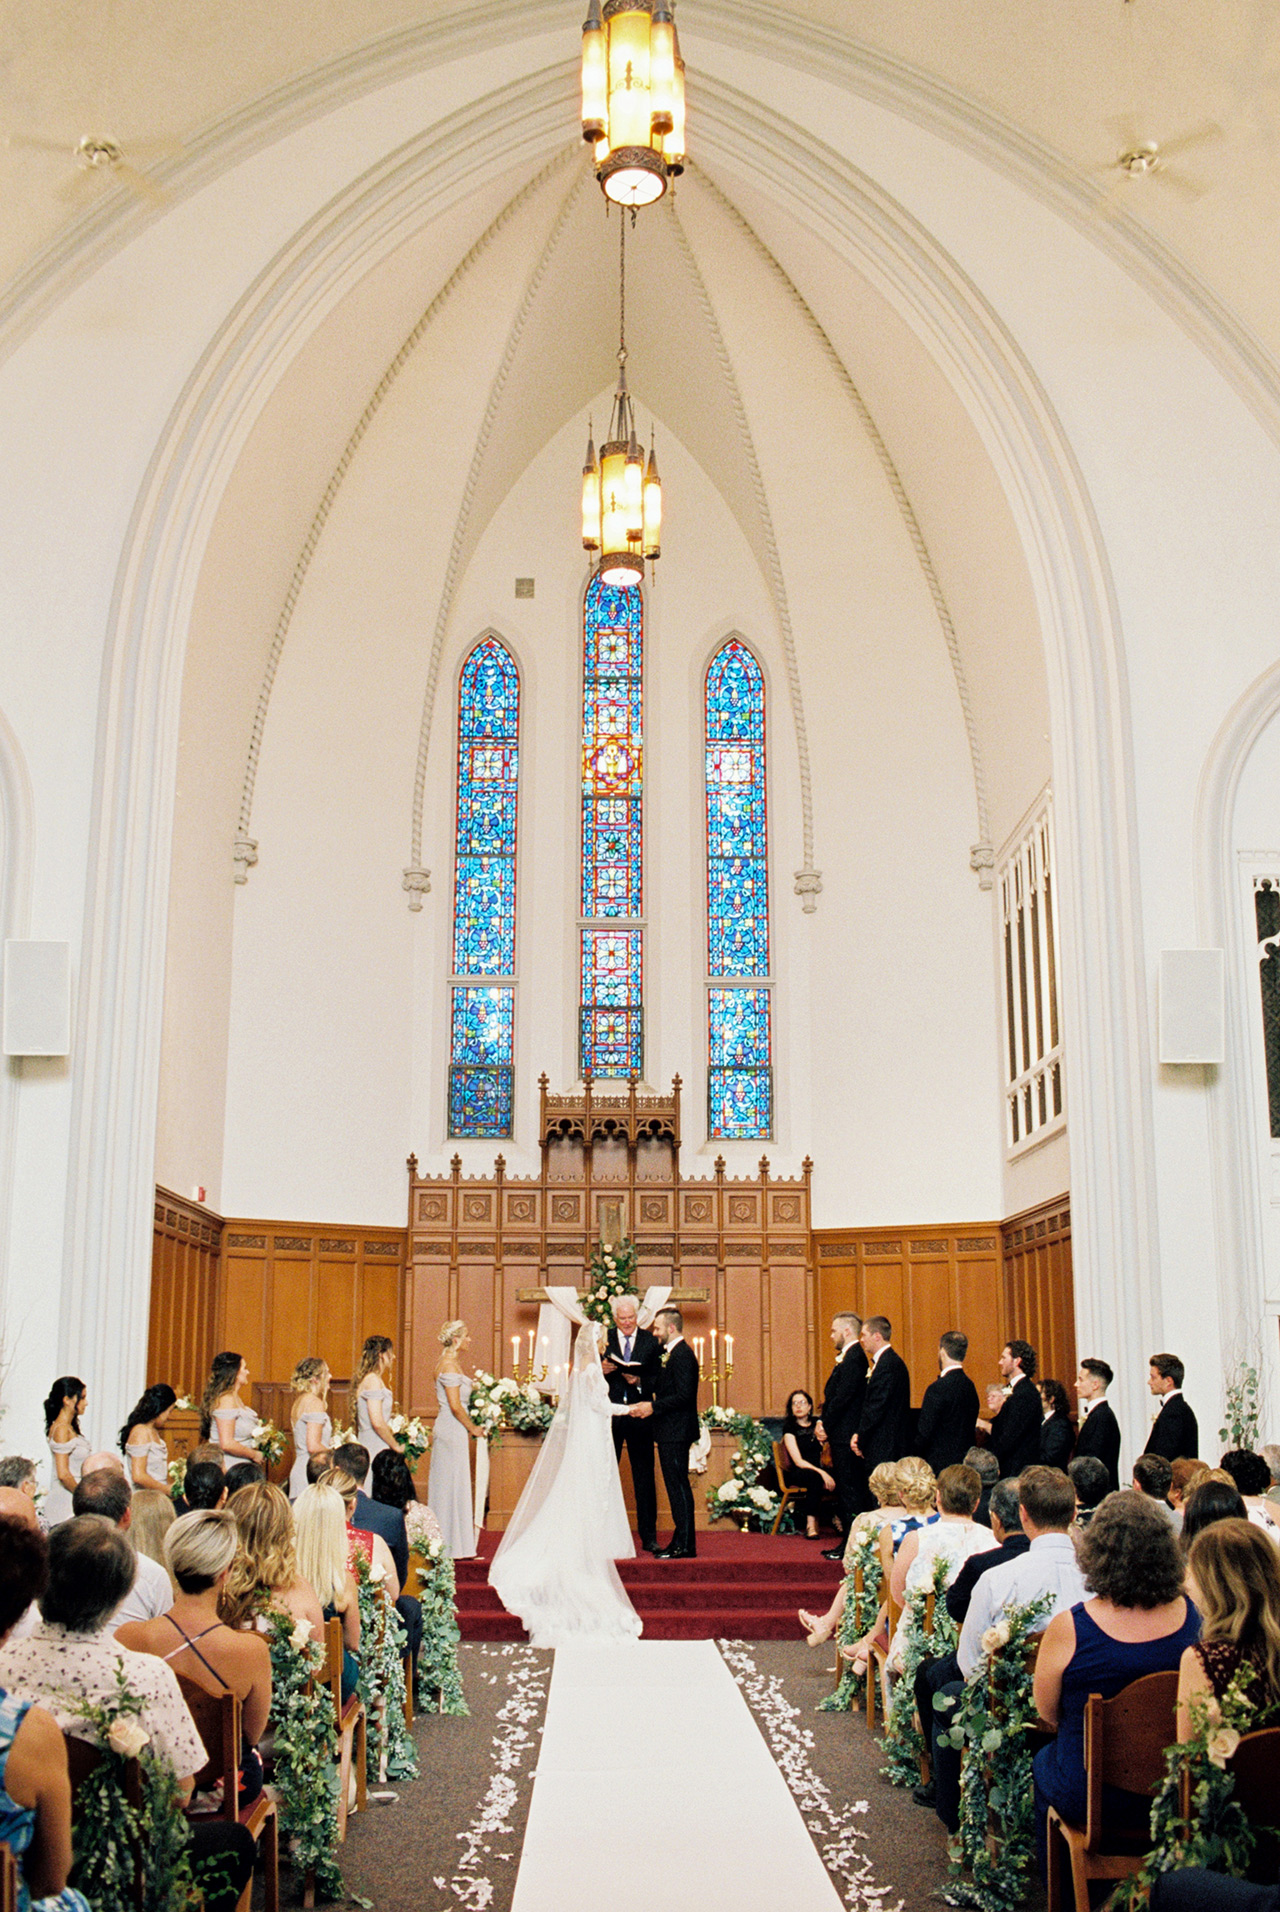 wedding ceremony indoor church alter stained glass